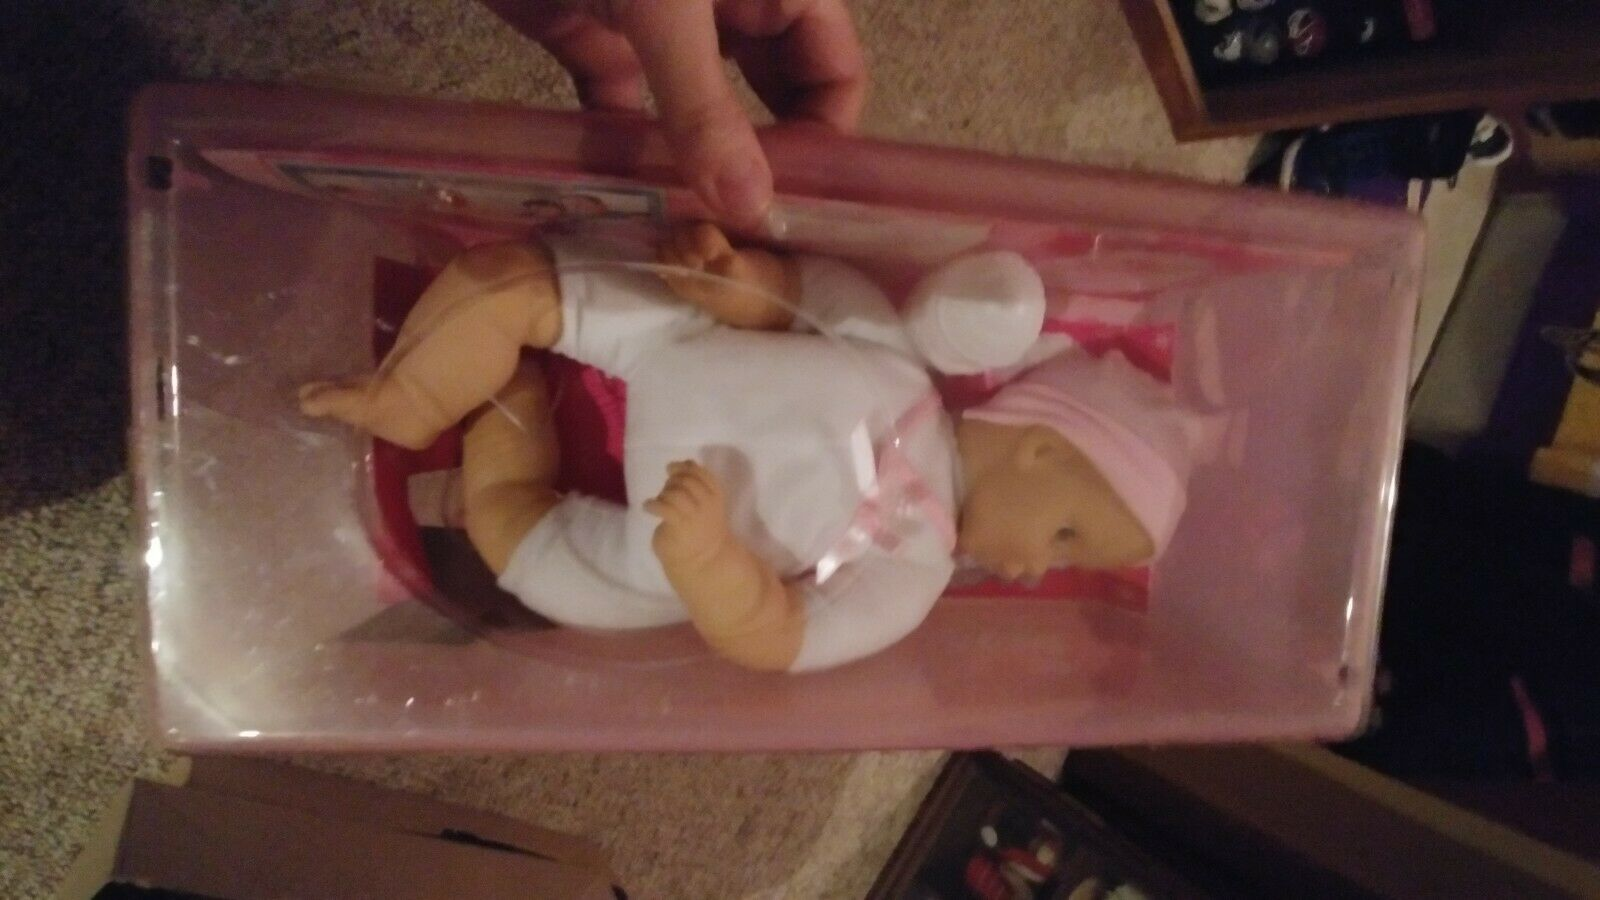 NIB BABY I'M YOURS 15  BABY DOLL Nursey Very Nice vintage doll. New Condition